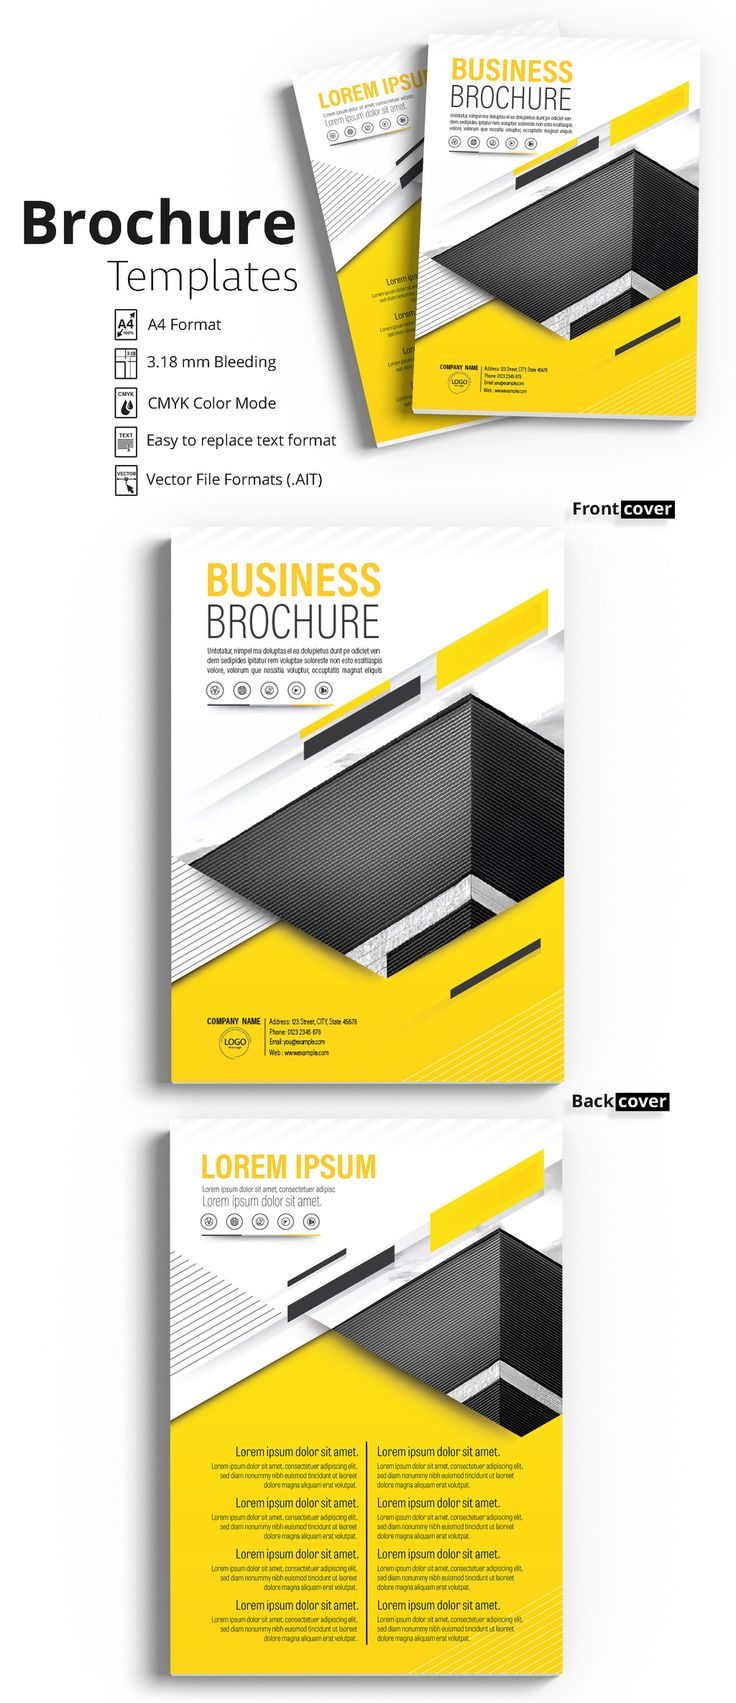 Brochure Cover Layout with Yellow and Gray Accents 2 - image   Adobe Stock #Brochure #Business #Proposal #Booklet #Flyer #Template #Design #Layout #Cover #Book #Booklet #A4 #Annual #Report  Brochure template   Brochure design template   Flyers   Template   Brochures   Flyer Background   Background design   Business Proposal   Proposal Design   Booklet   Professional   Professional - Proposal - Brochure - Template